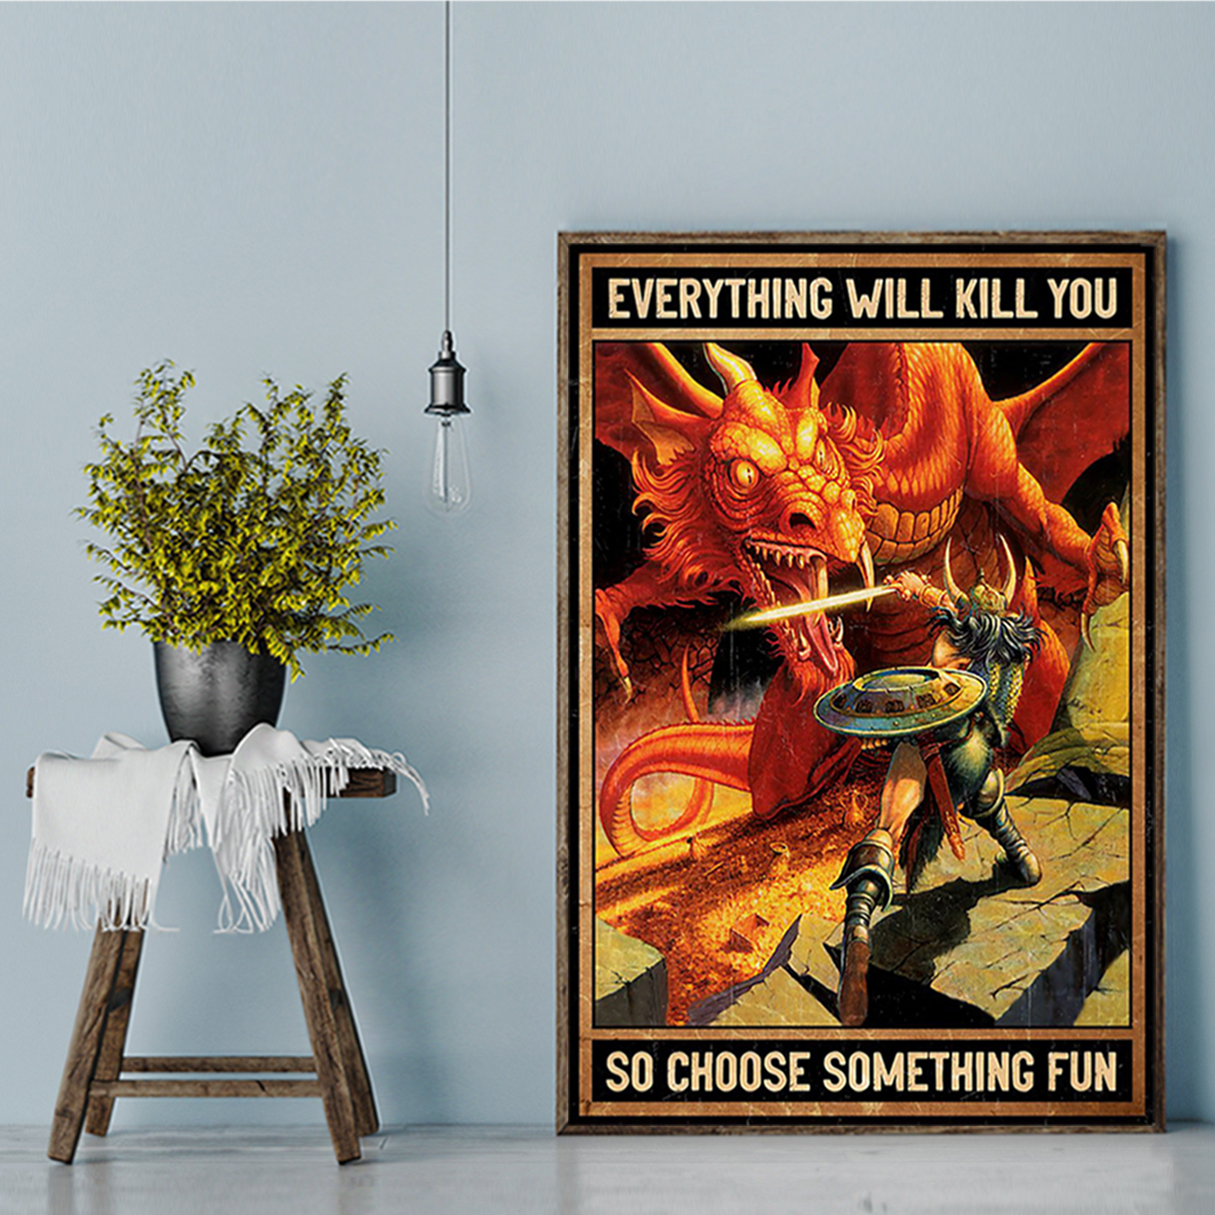 Dungeons and dragons everything will kill you so choose something fun poster A3